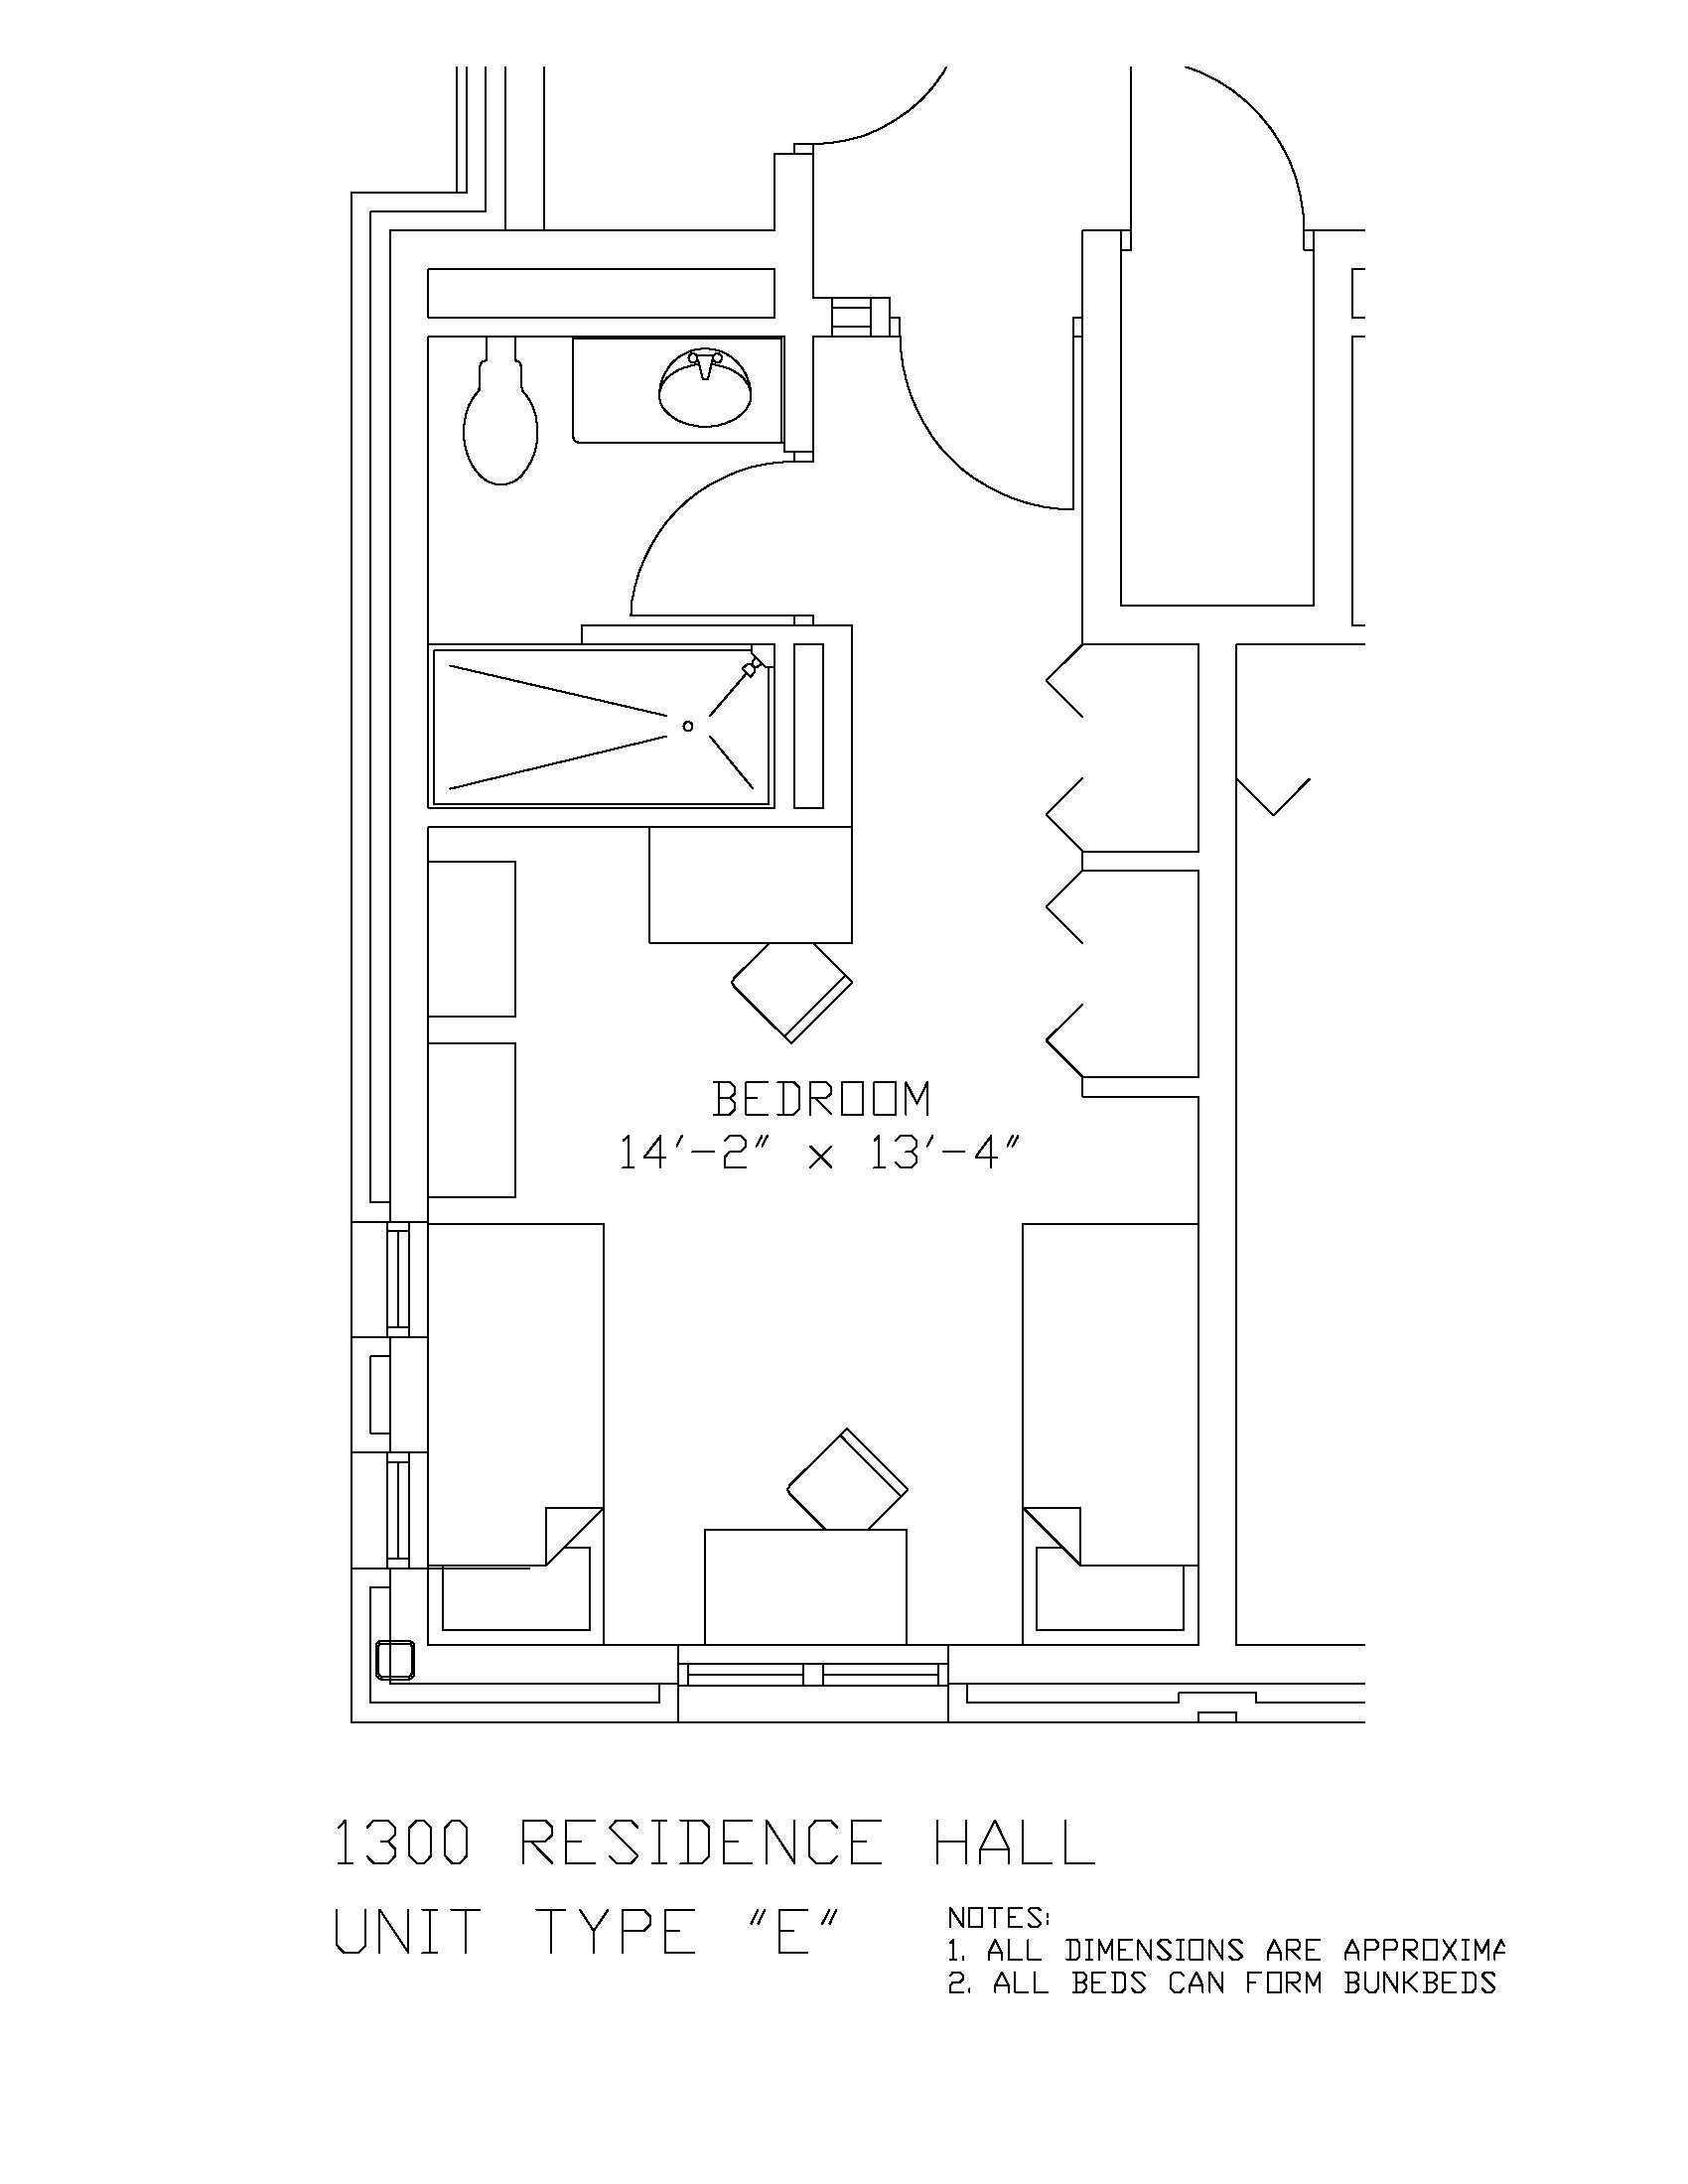 1300 Residence Hall: Type E